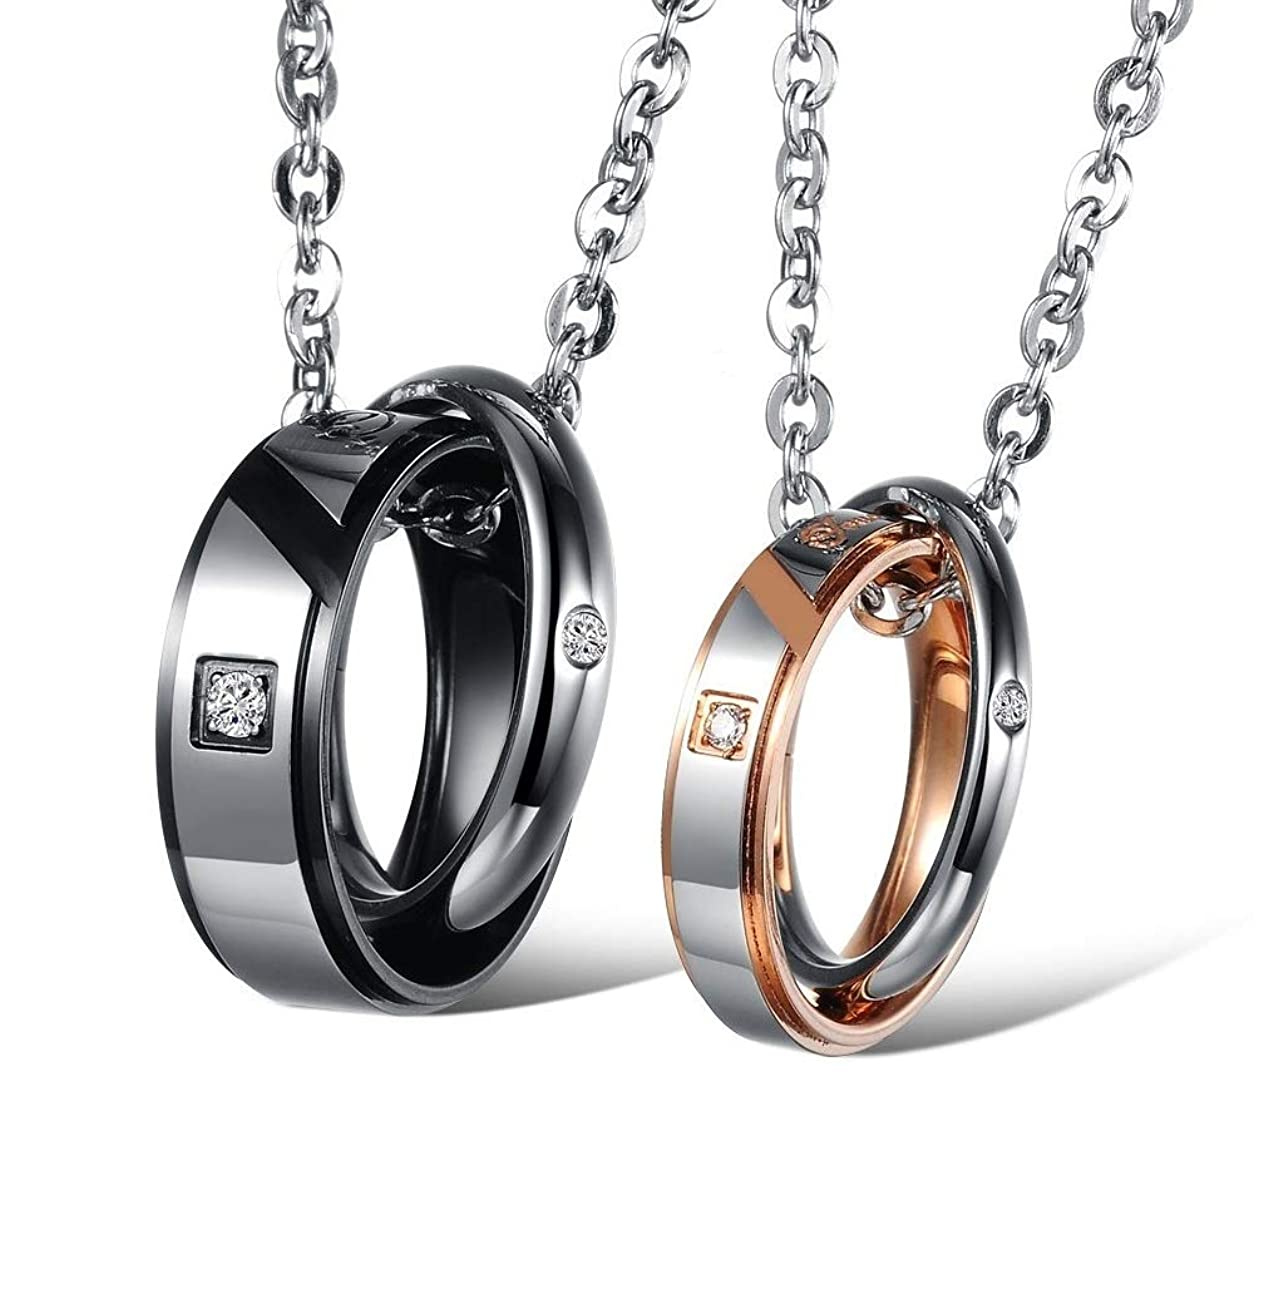 SunnyHouse His & Hers Matching Set Couple Titanium Stainless Steel Pendant Necklace Simple Love in a Gift Box (A Set)